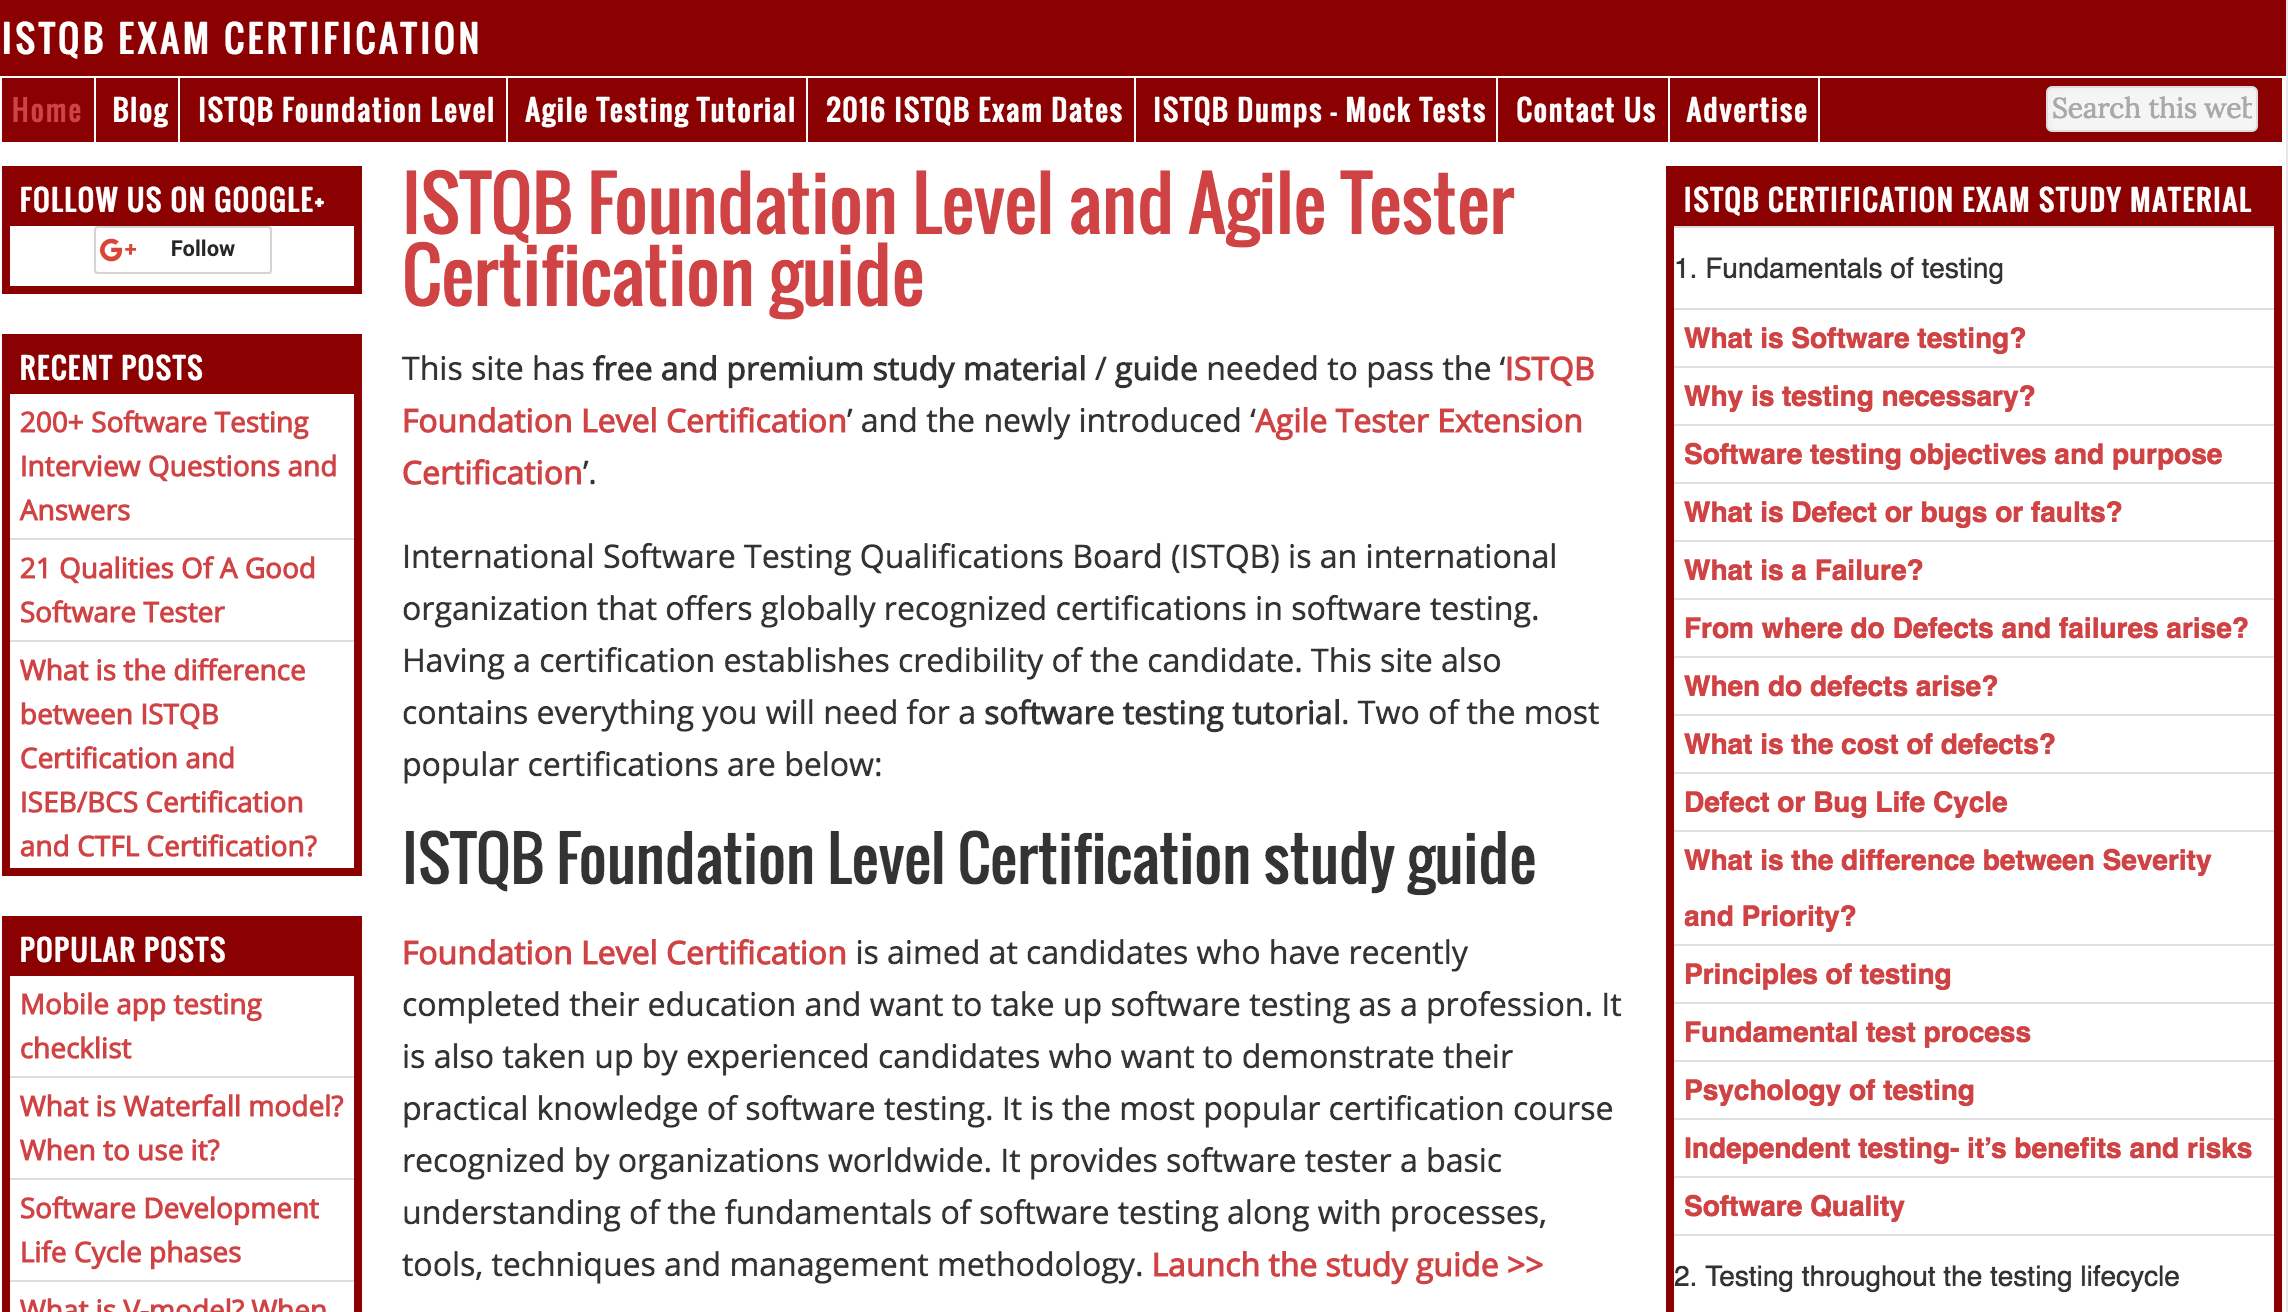 ISTQB Foundation Level and Agile Tester Certification Guide